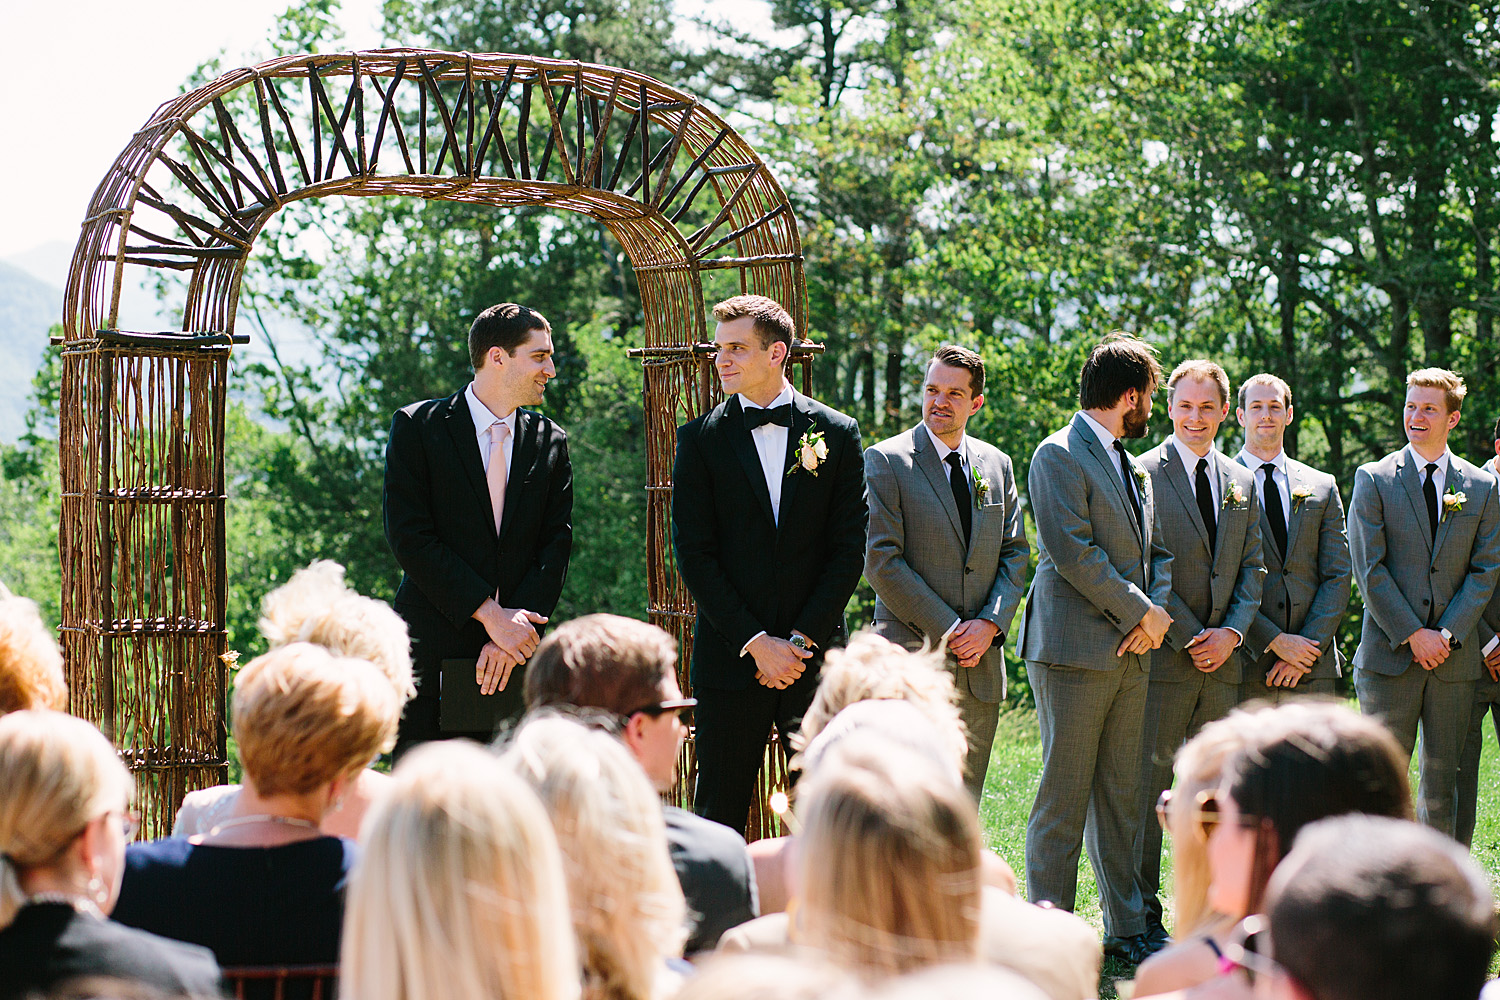 Jeremy-Russell-Asheville-The-Ridge-Wedding-1705-43.jpg